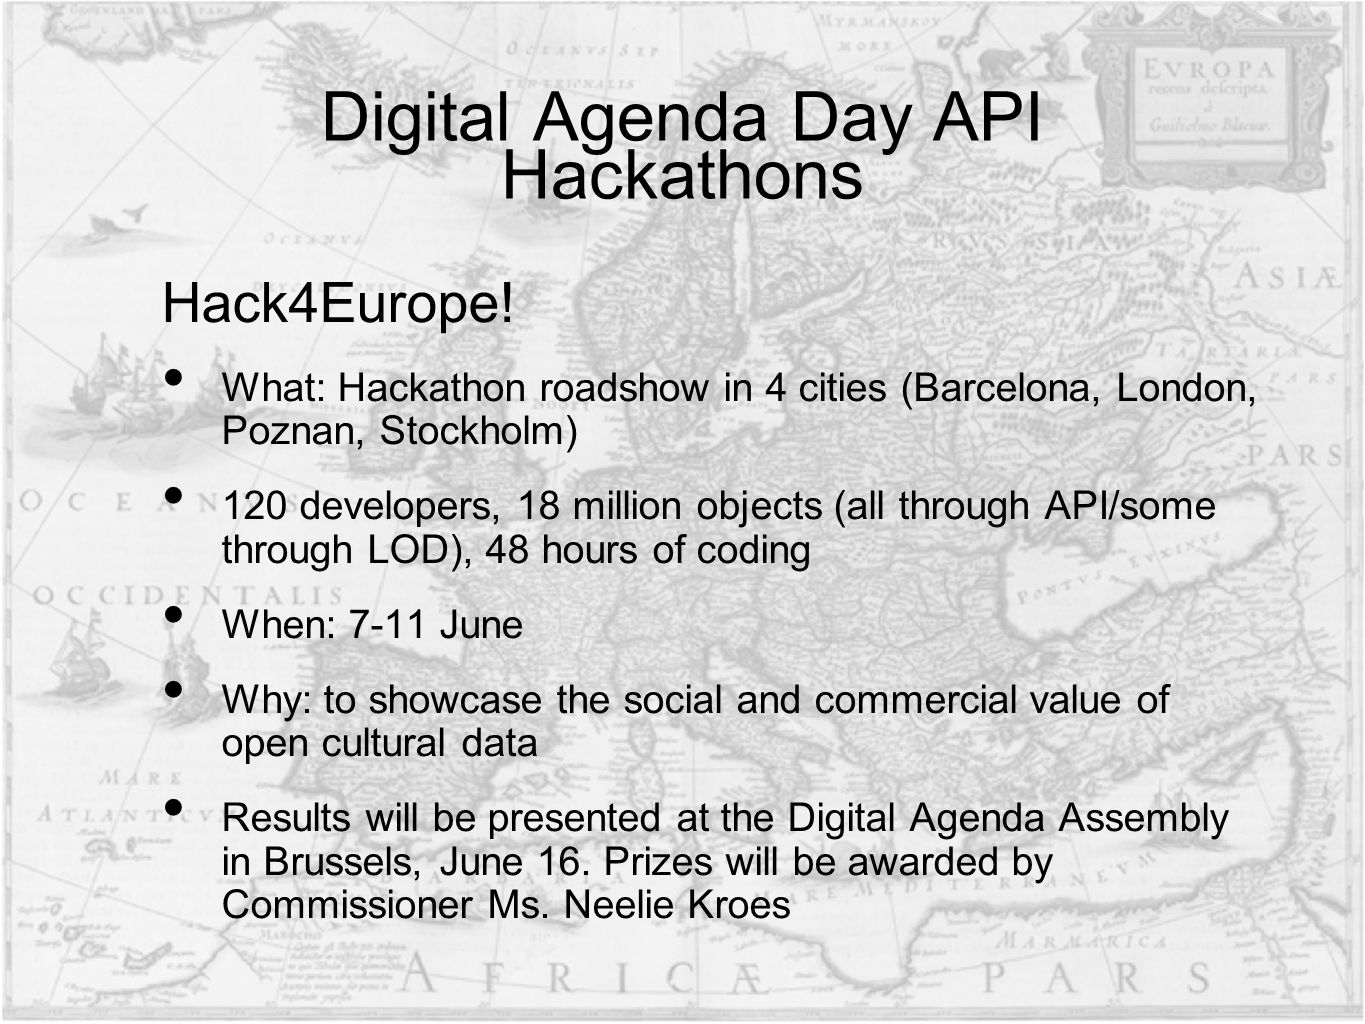 Digital Agenda Day API Hackathons Hack4Europe! What: Hackathon roadshow in 4 cities (Barcelona, London, Poznan, Stockholm) 120 developers, 18 million